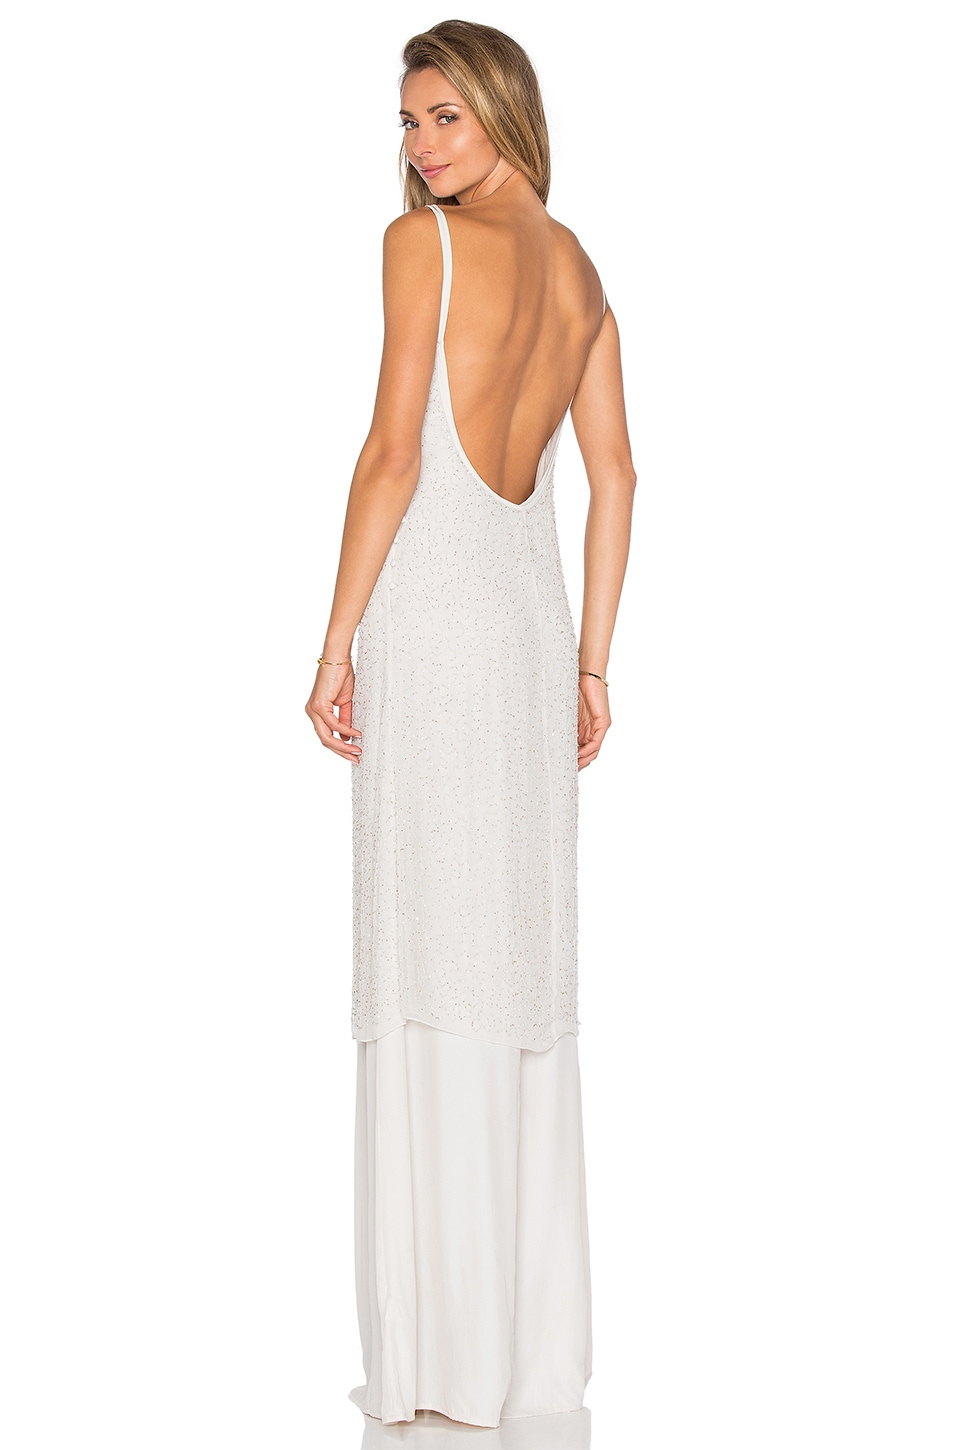 Embellished Maxi Dress by Hoss Intropia